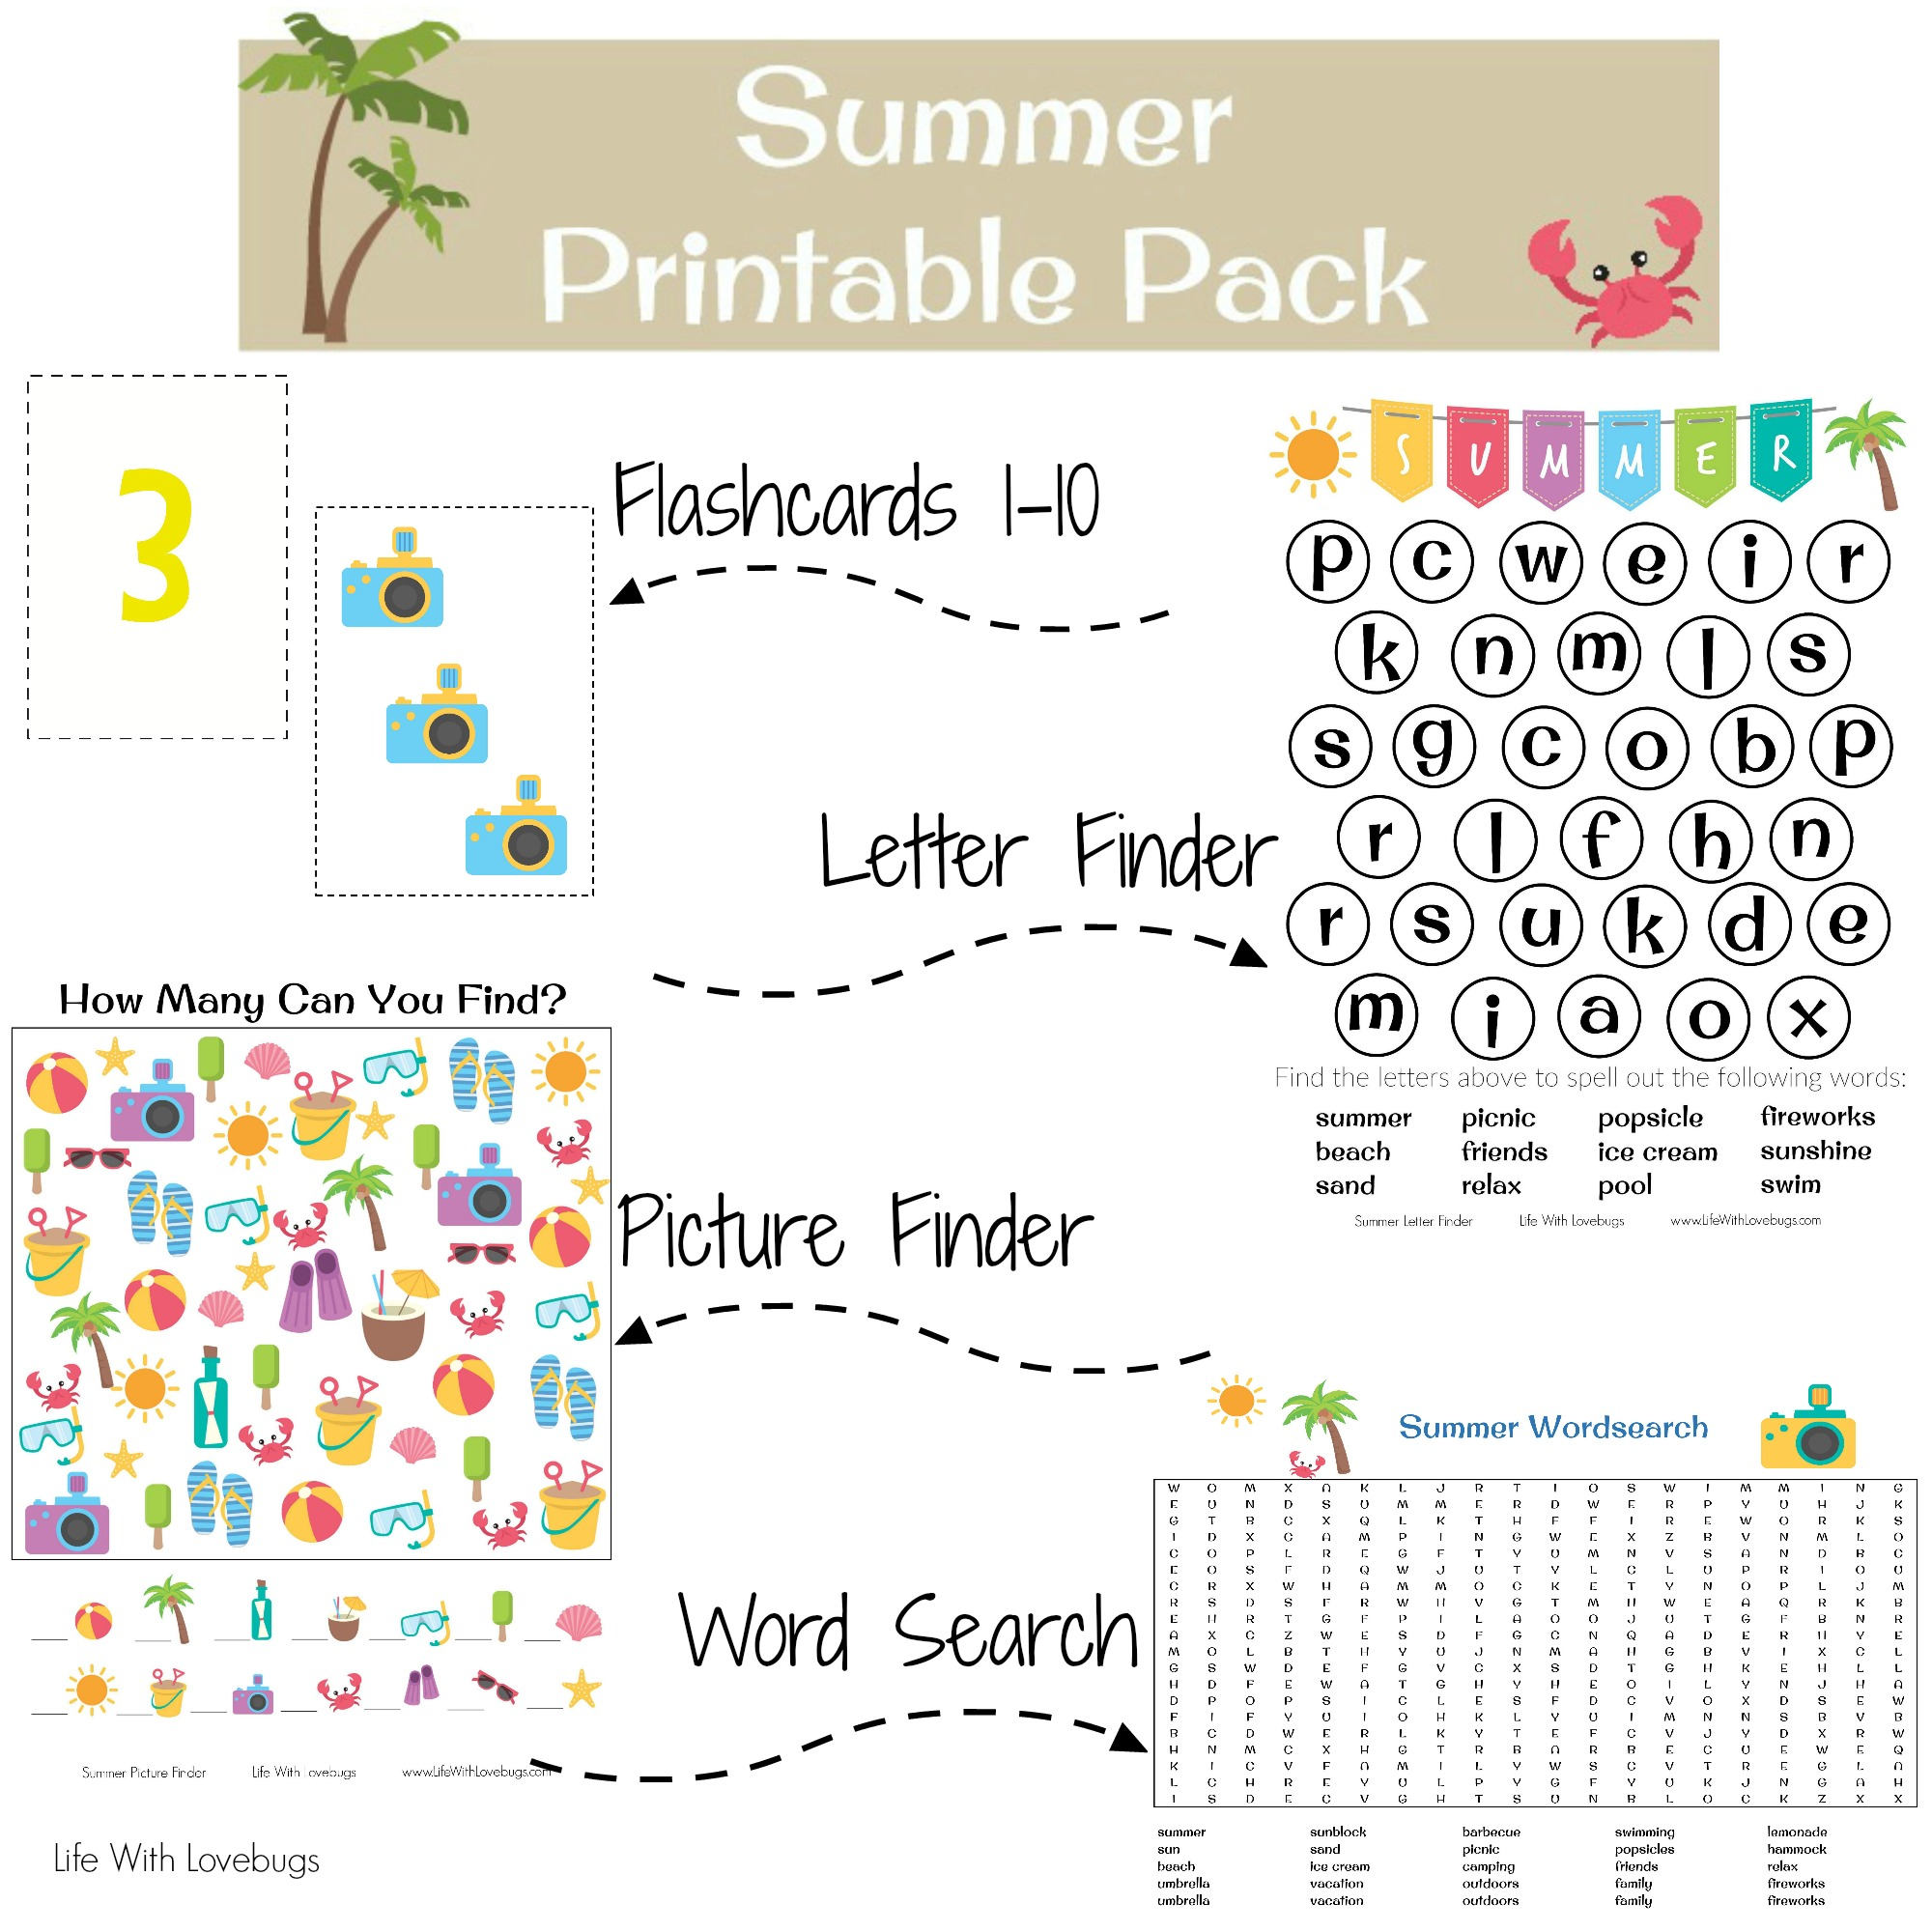 image regarding Summer Printable known as Summertime Printable Sport Sheets - Lifestyle With Lovebugs